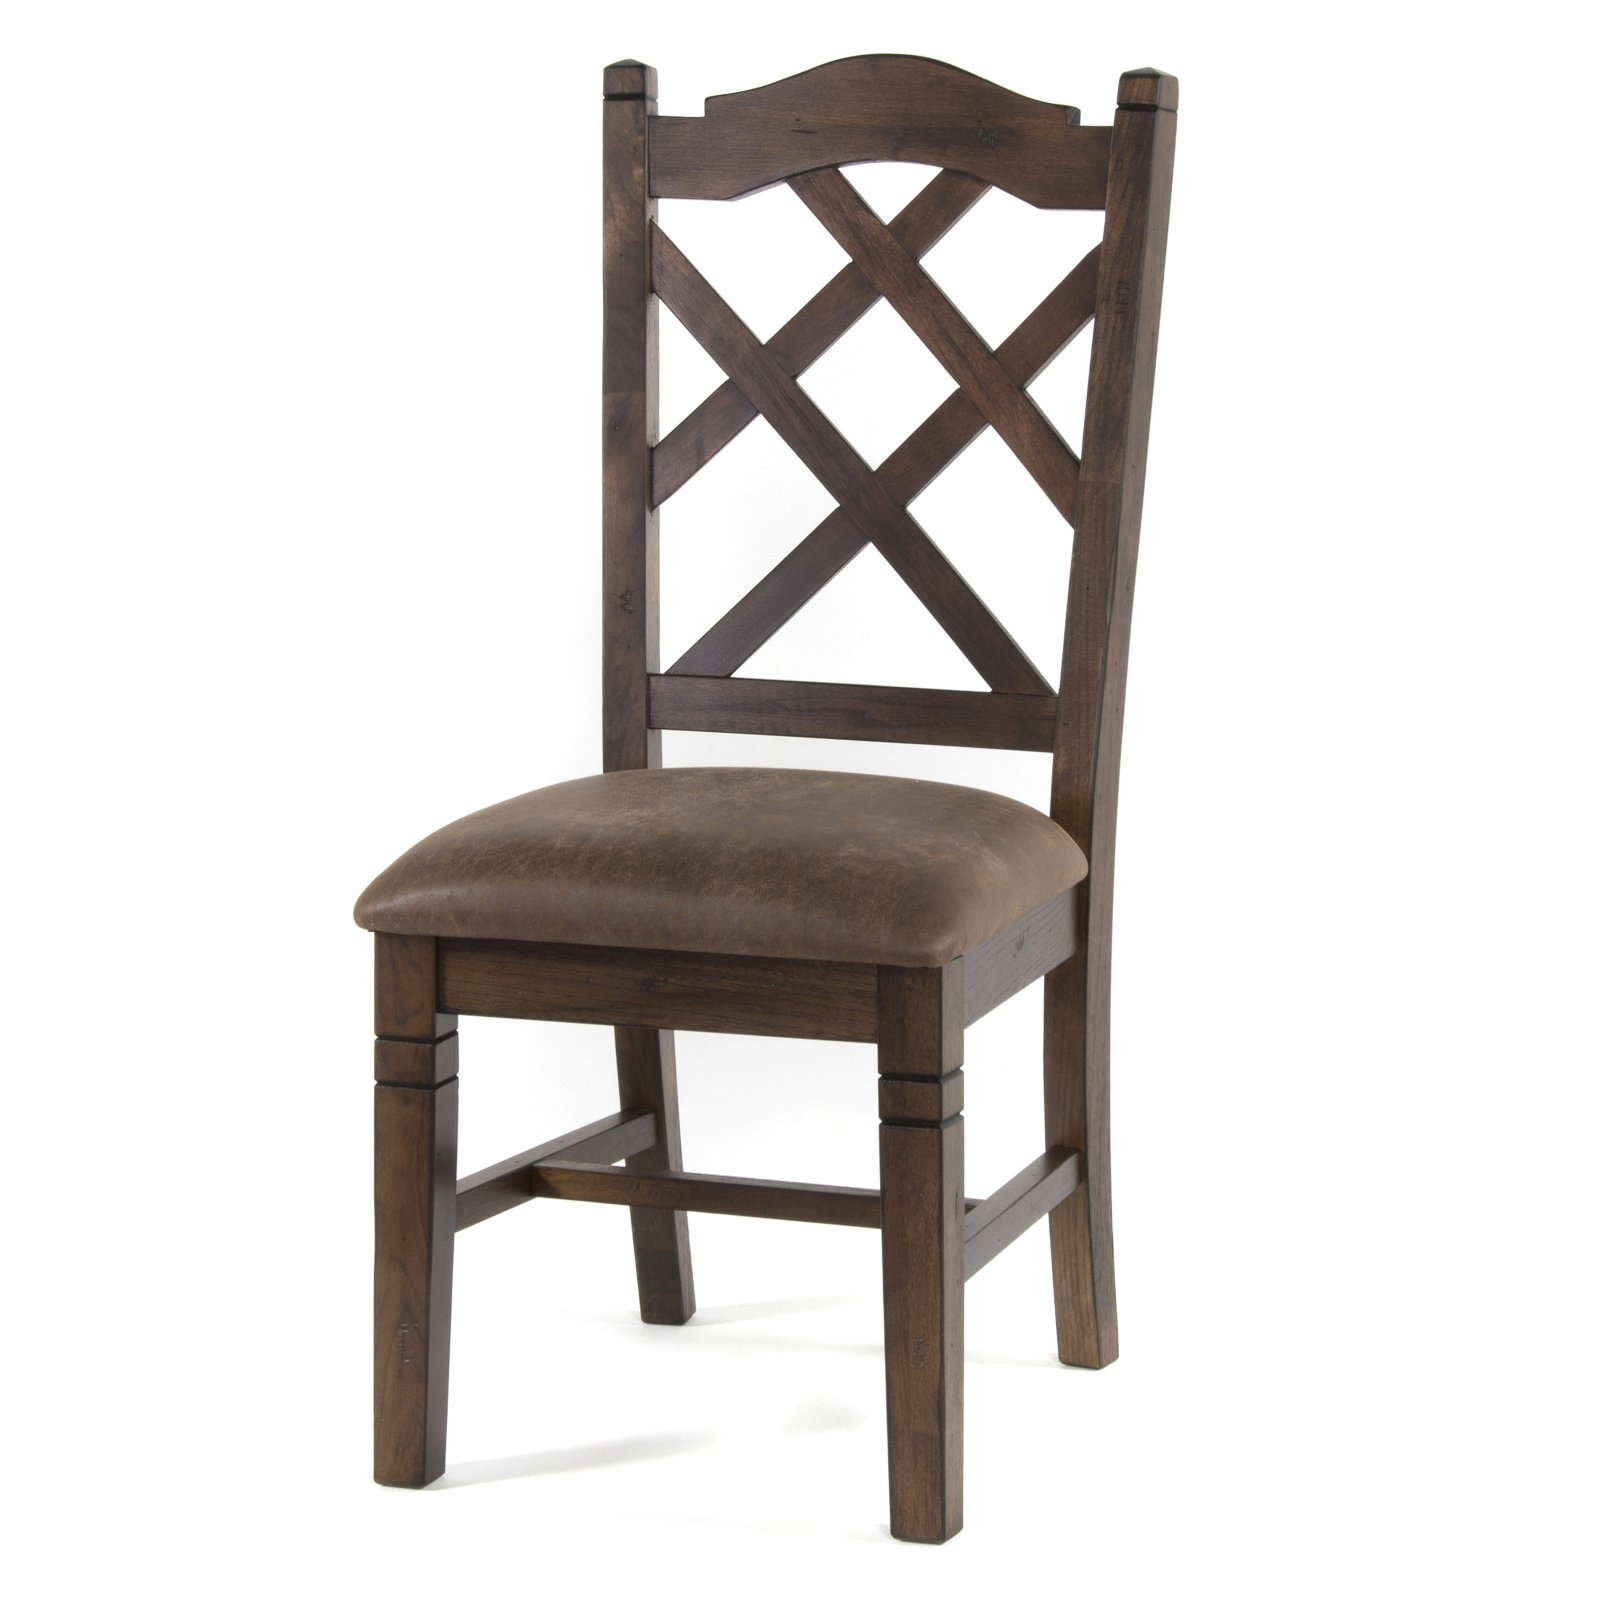 Sunny Designs Savannah Double Crossback Dining Chair